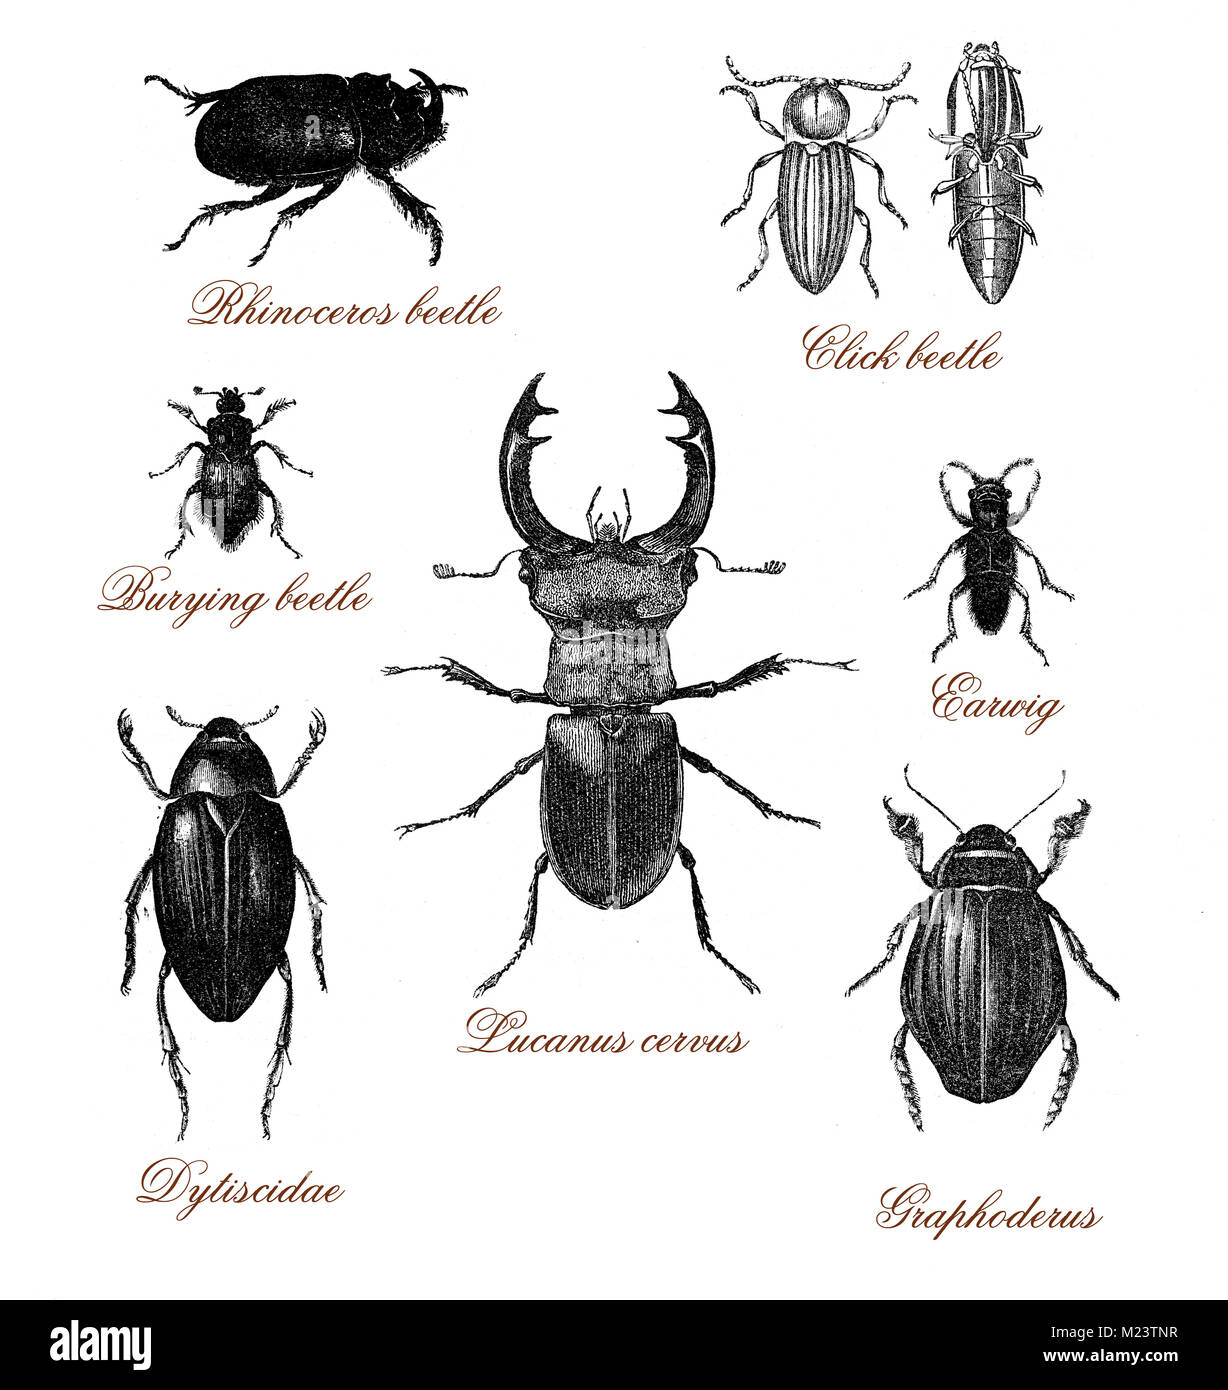 Vintage illustration table  with different kind of beetles - Stock Image